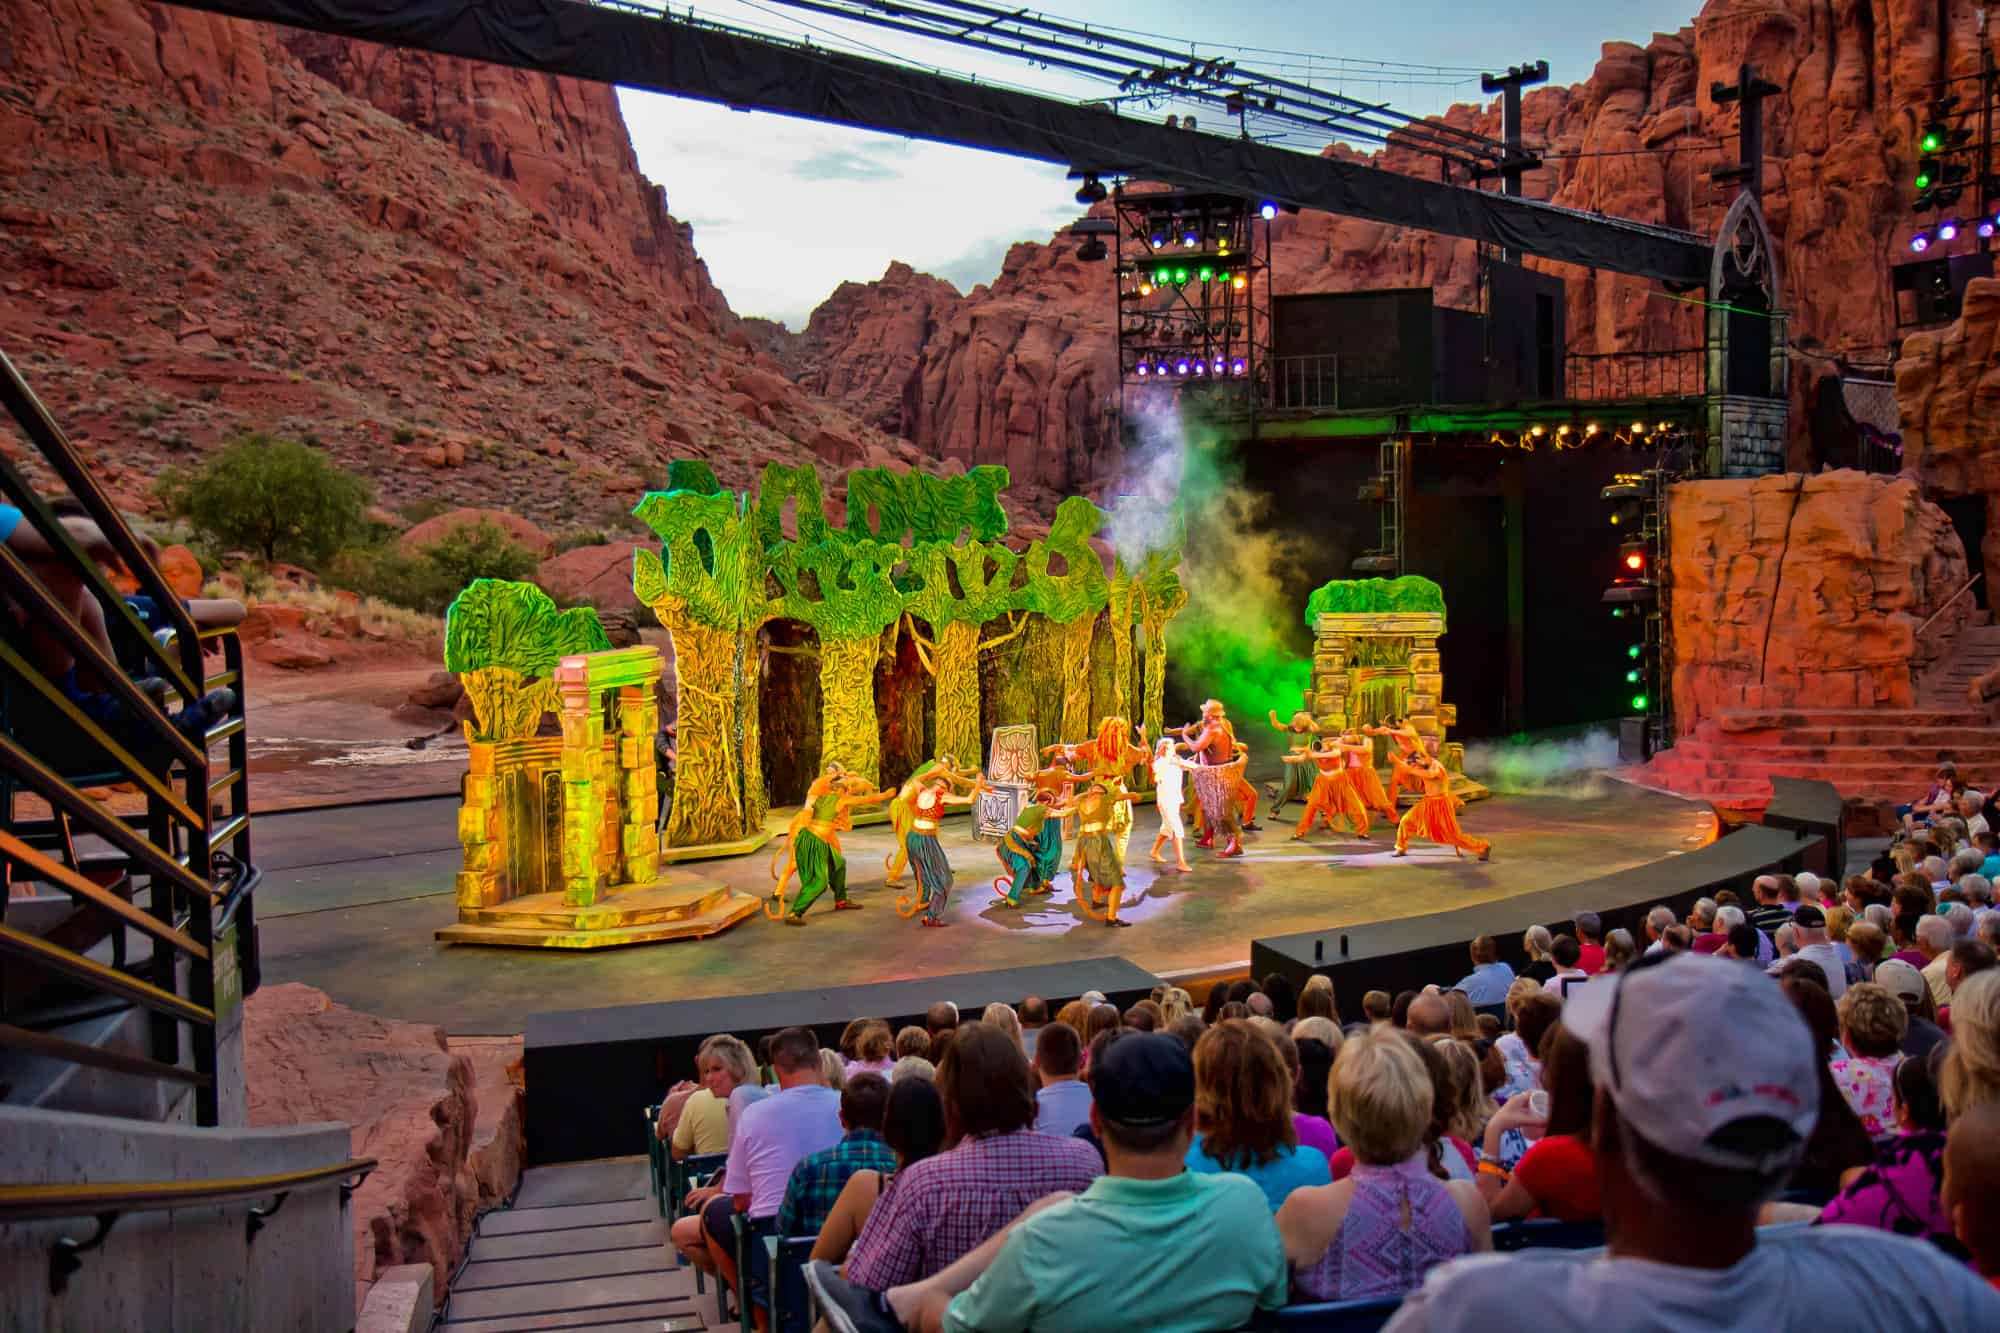 things to do in st george with kids including visiting the Tarzan at Tuacahn Center of the Arts